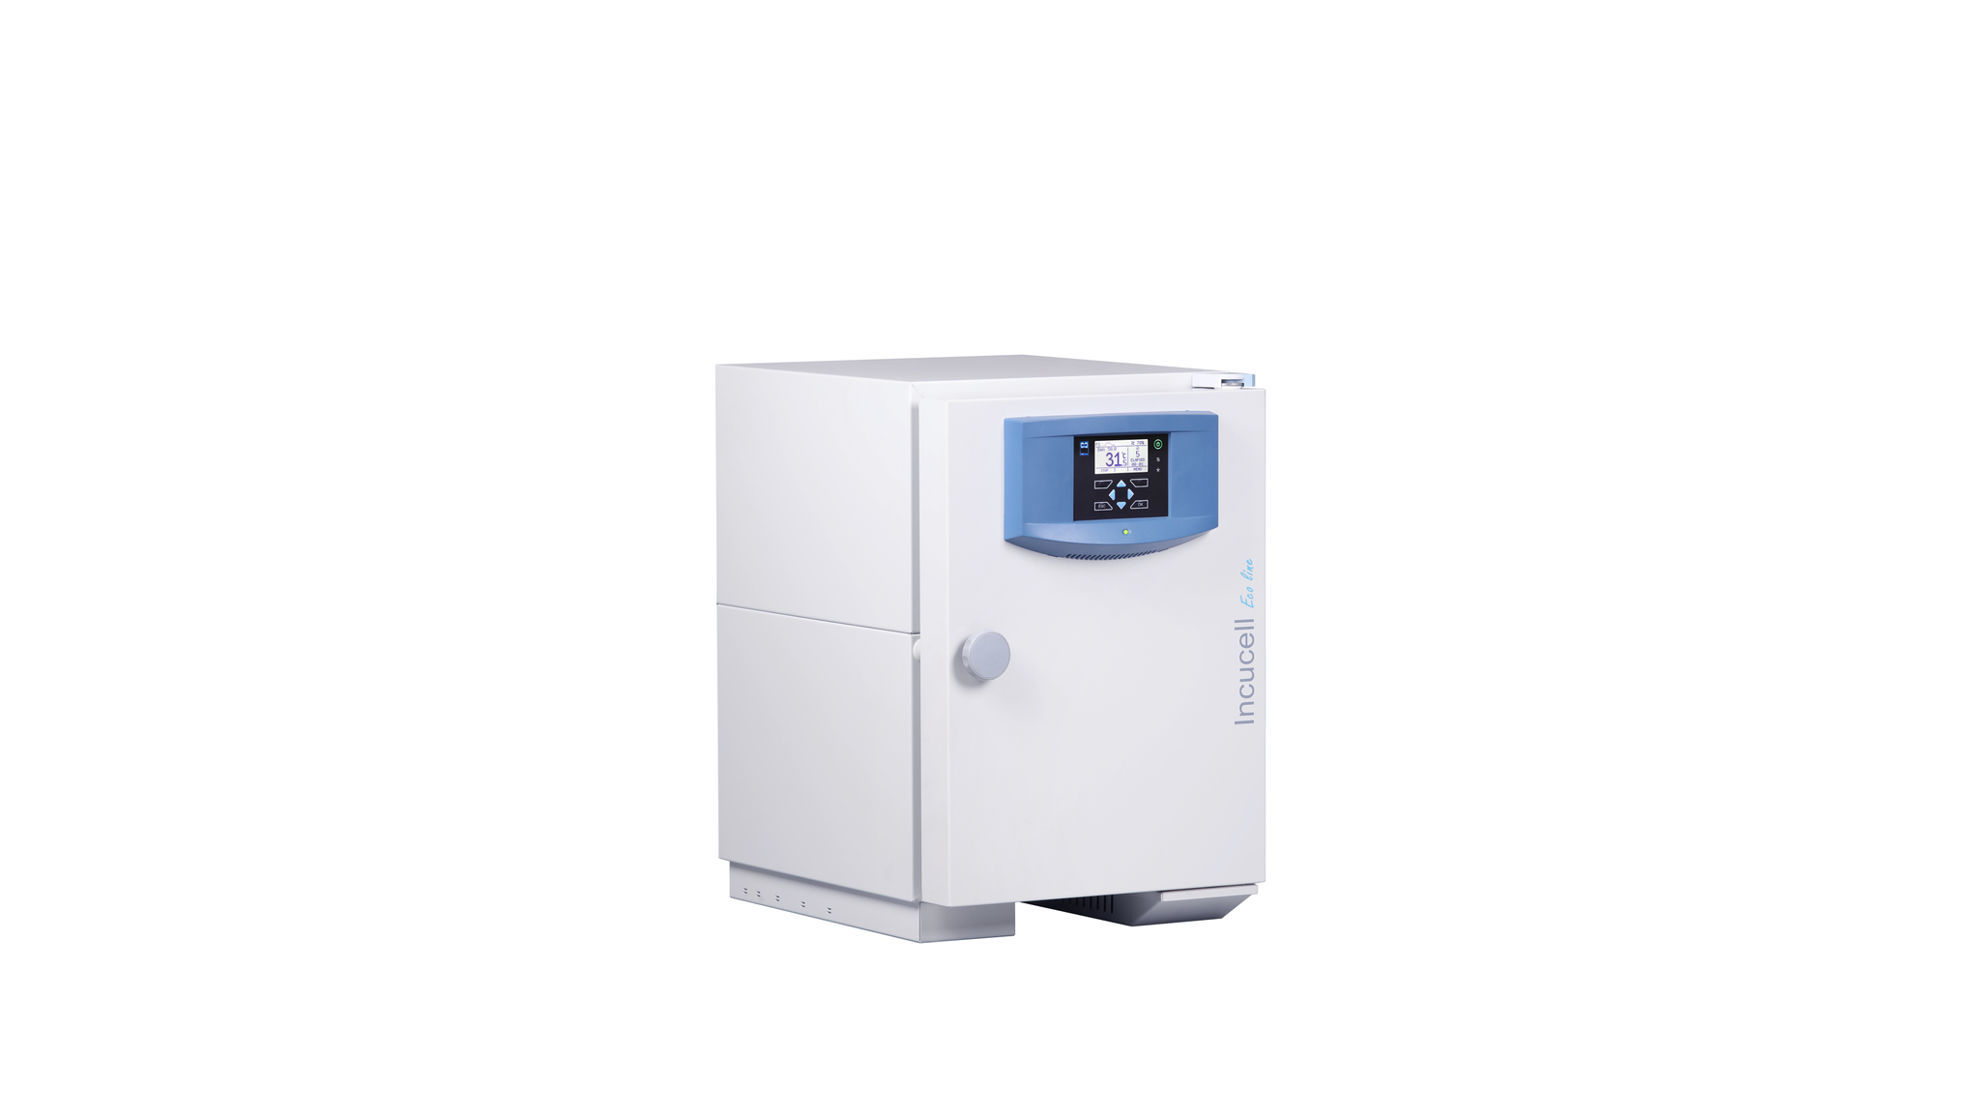 Picture of BMT Incucell V ECO Forced Air Incubators - MC000227